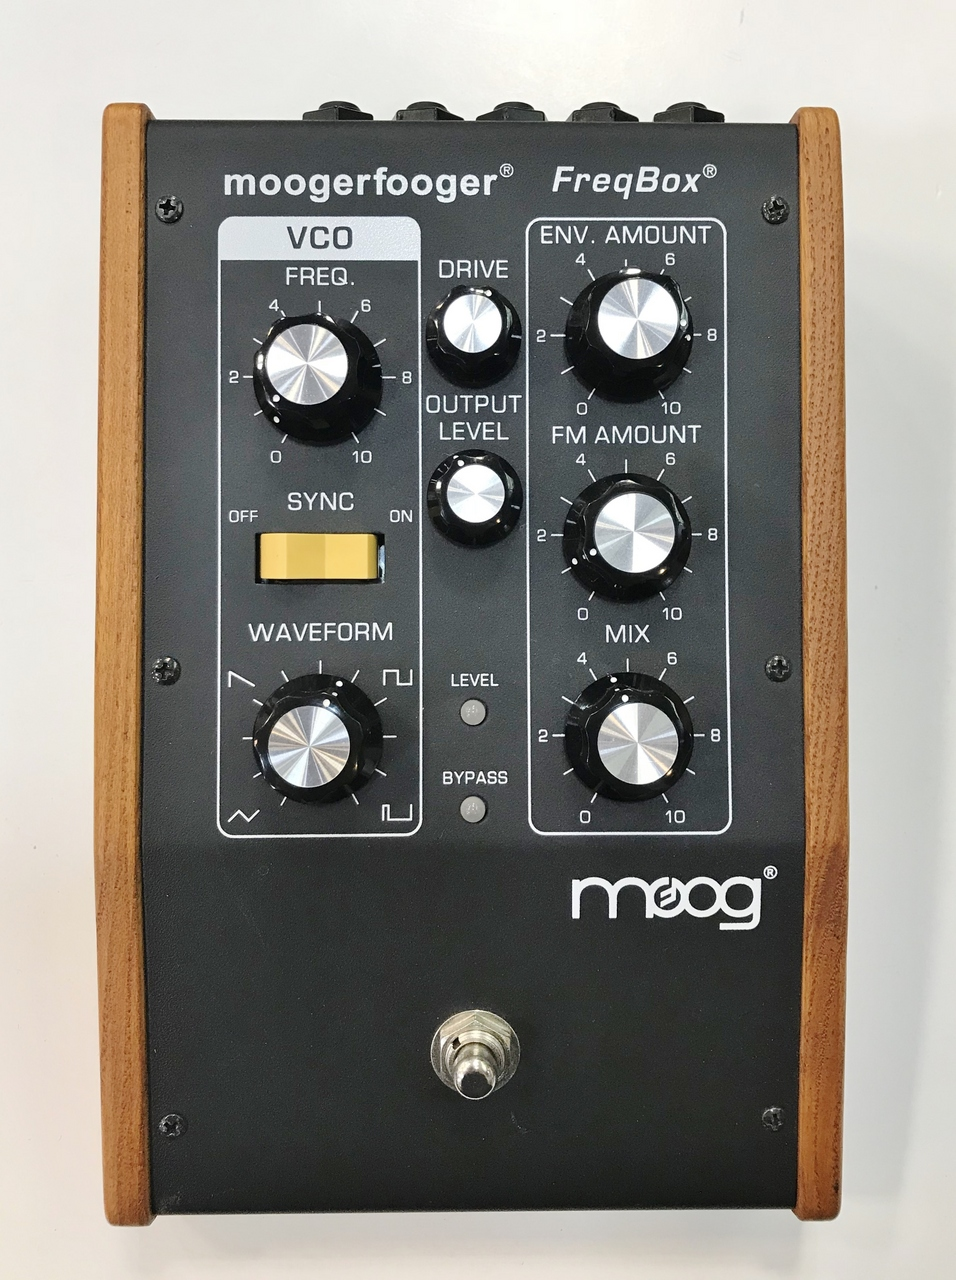 MoogerFooger MF-107 FreqBox Outlet Specials]